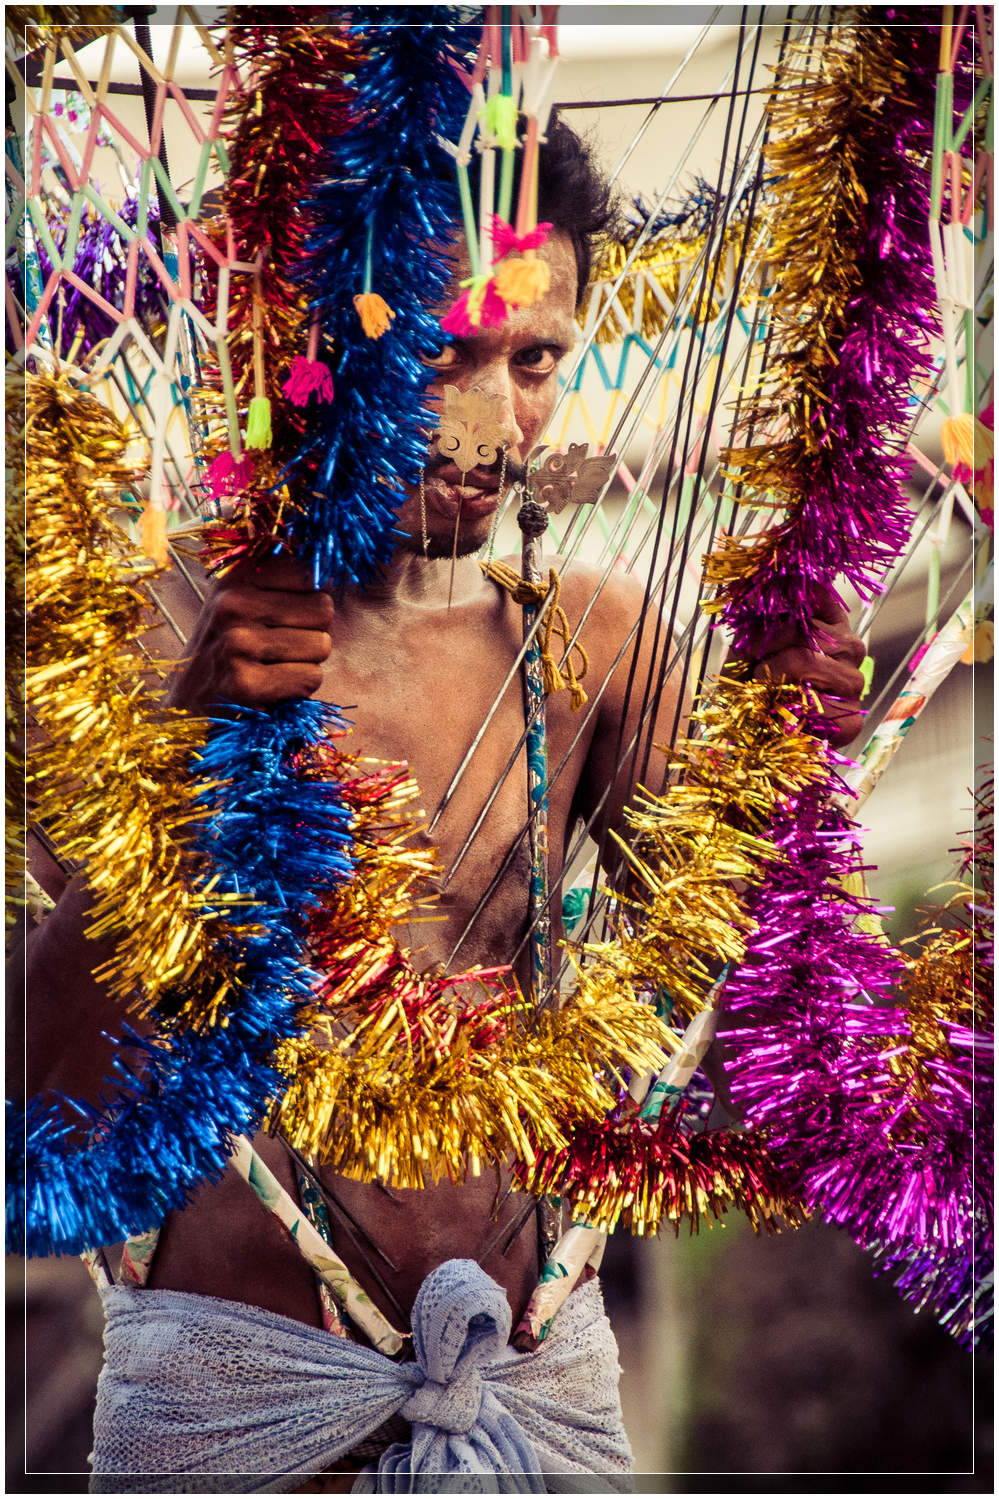 A devotee carrying a vel kavadi (burden) made of metal spears piercing his torso, with a decorated canopy overtop.  The tongue is pierced to be a constant reminder of god.  © Dustin Main 2013